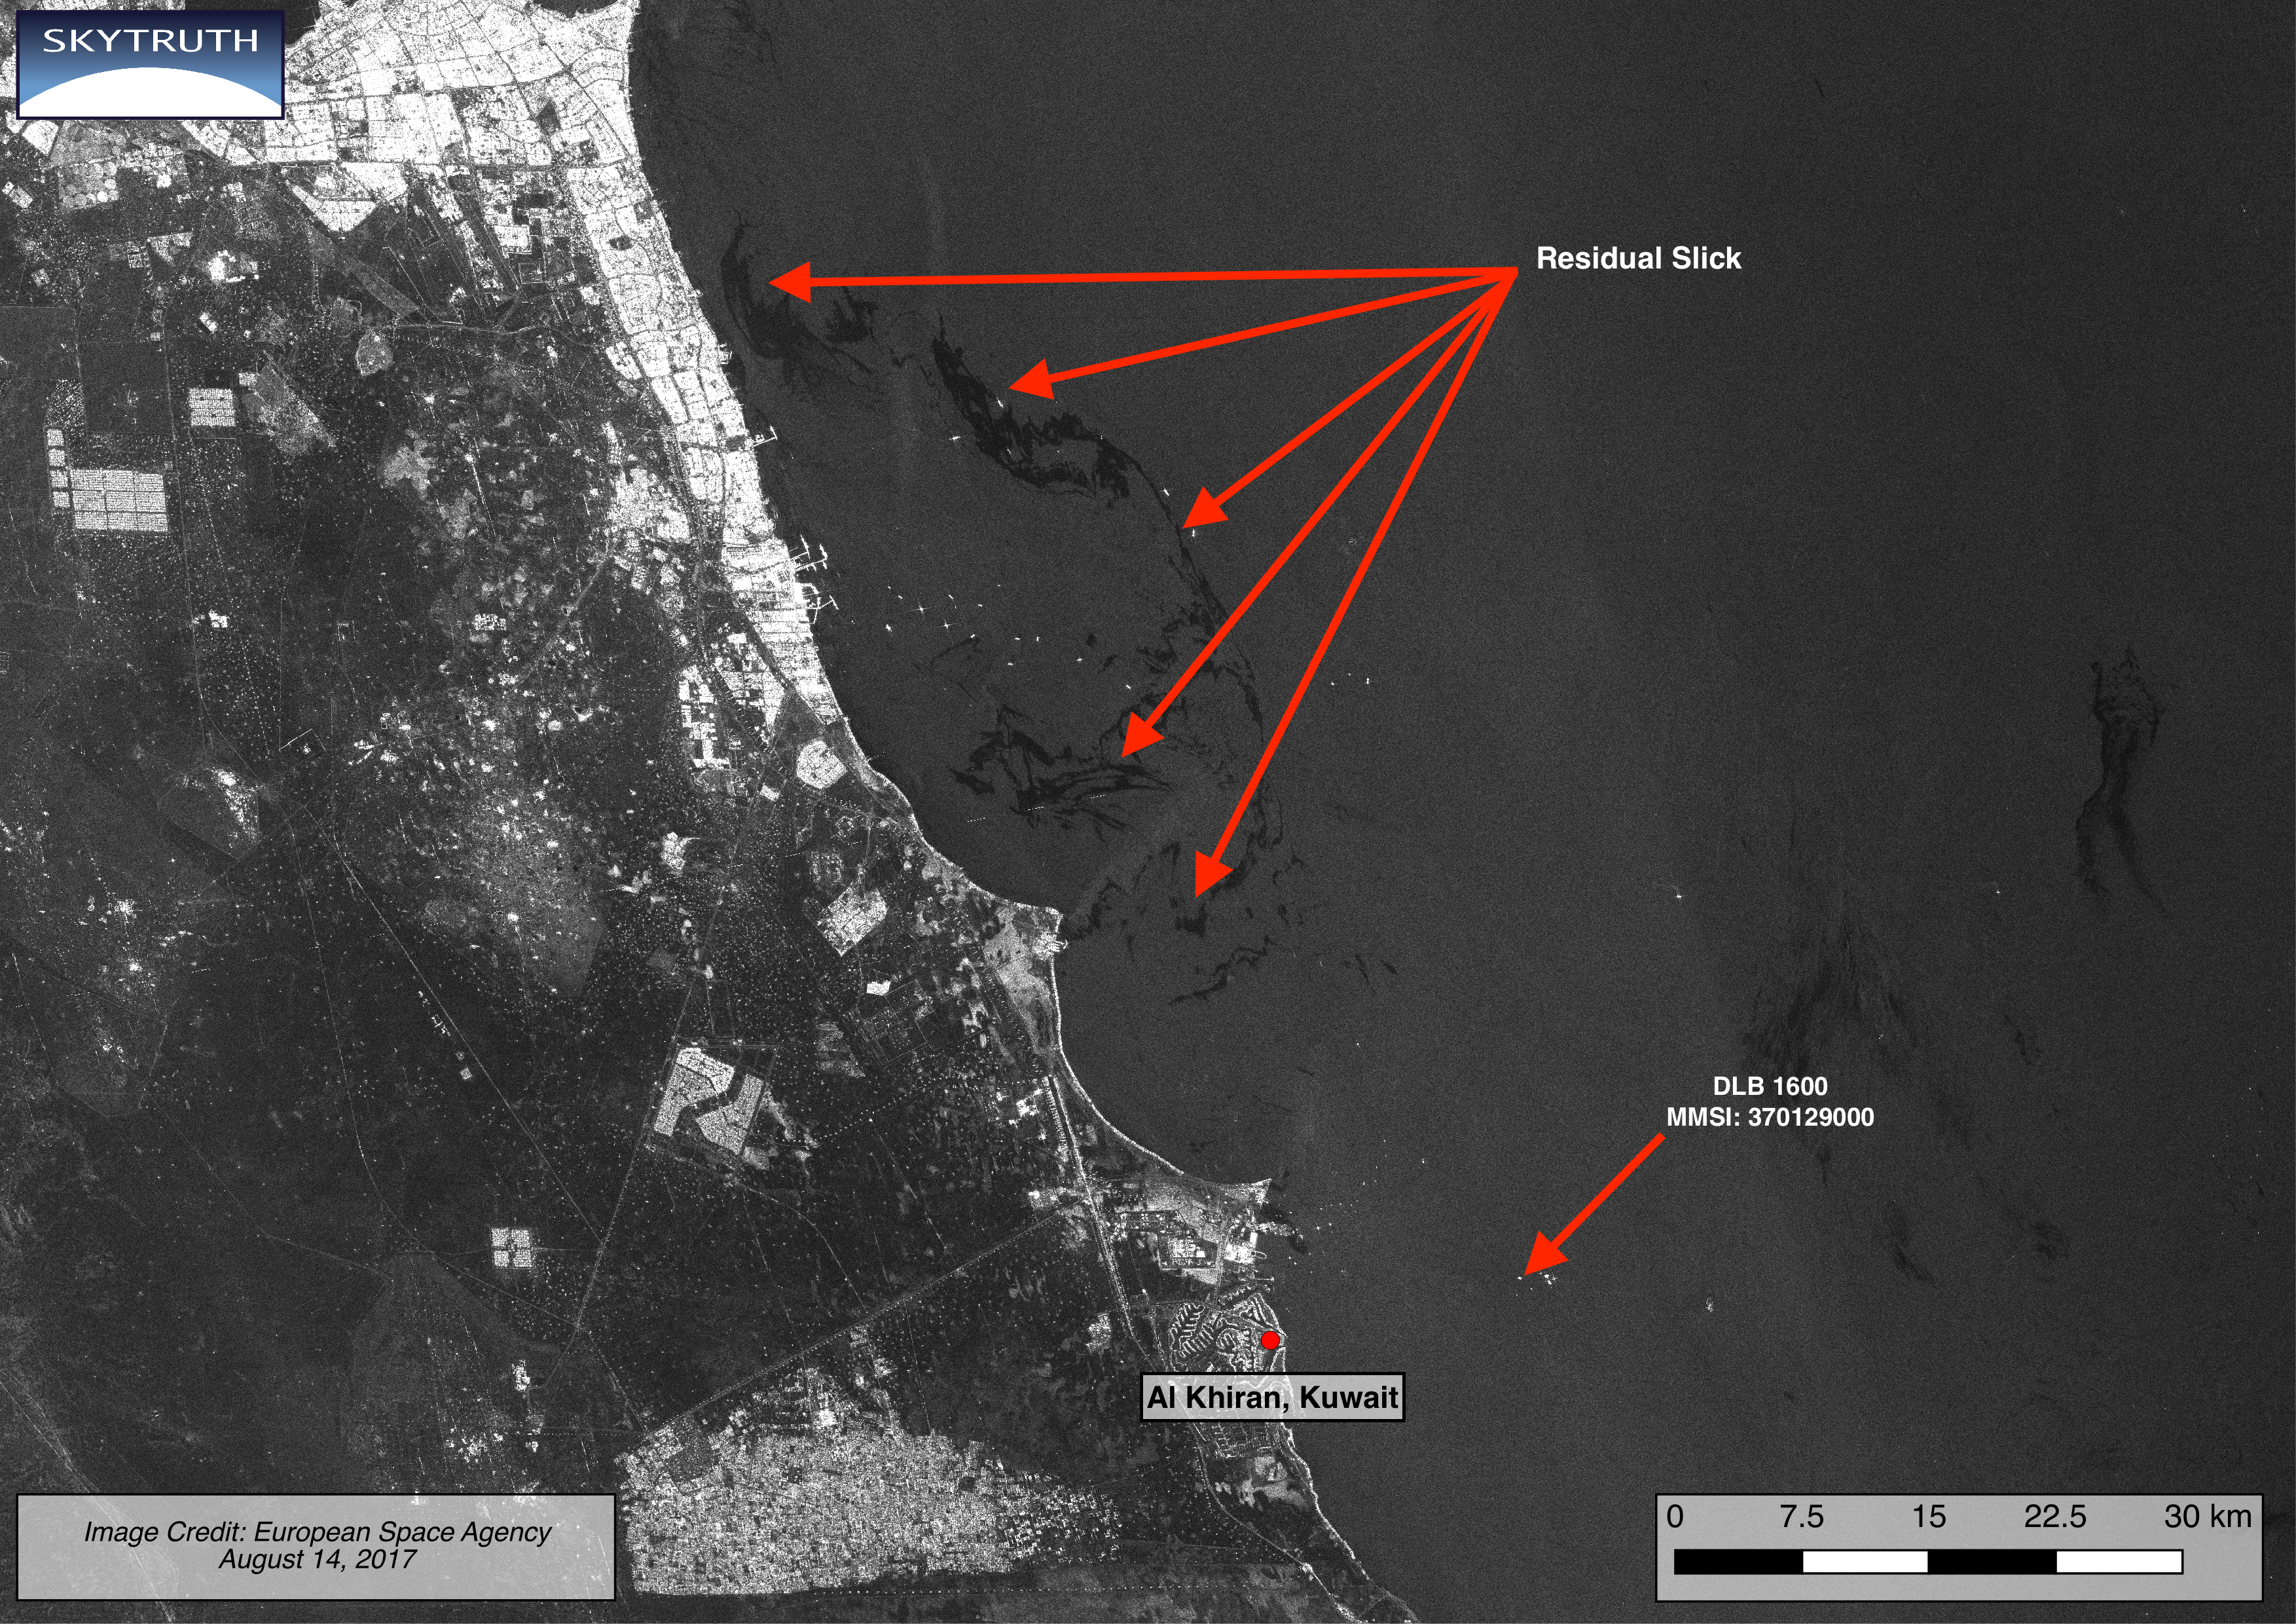 Sentinel-1 radar satellite image taken on August 14, 2017, showing remnants of oil slick off Kuwait. Location of pipelay vessel DLB 1600 is indicated. Vessel has moved several kilometers to the east compared to position on August 10. Image courtesy of the European Space Agency.